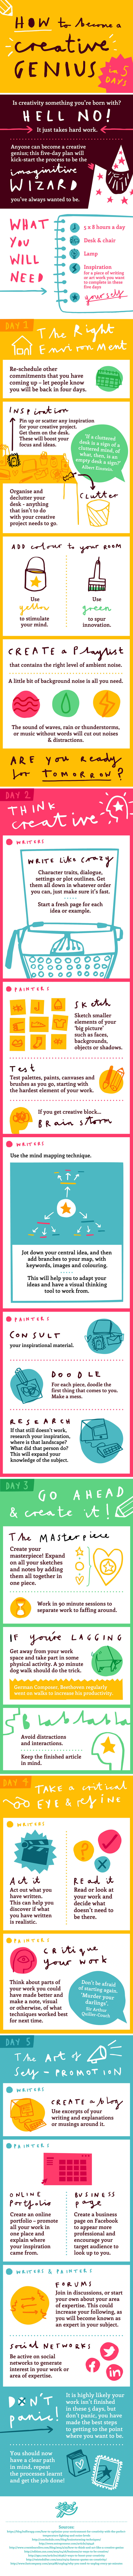 How to Become a Creative Genius in 5 Days